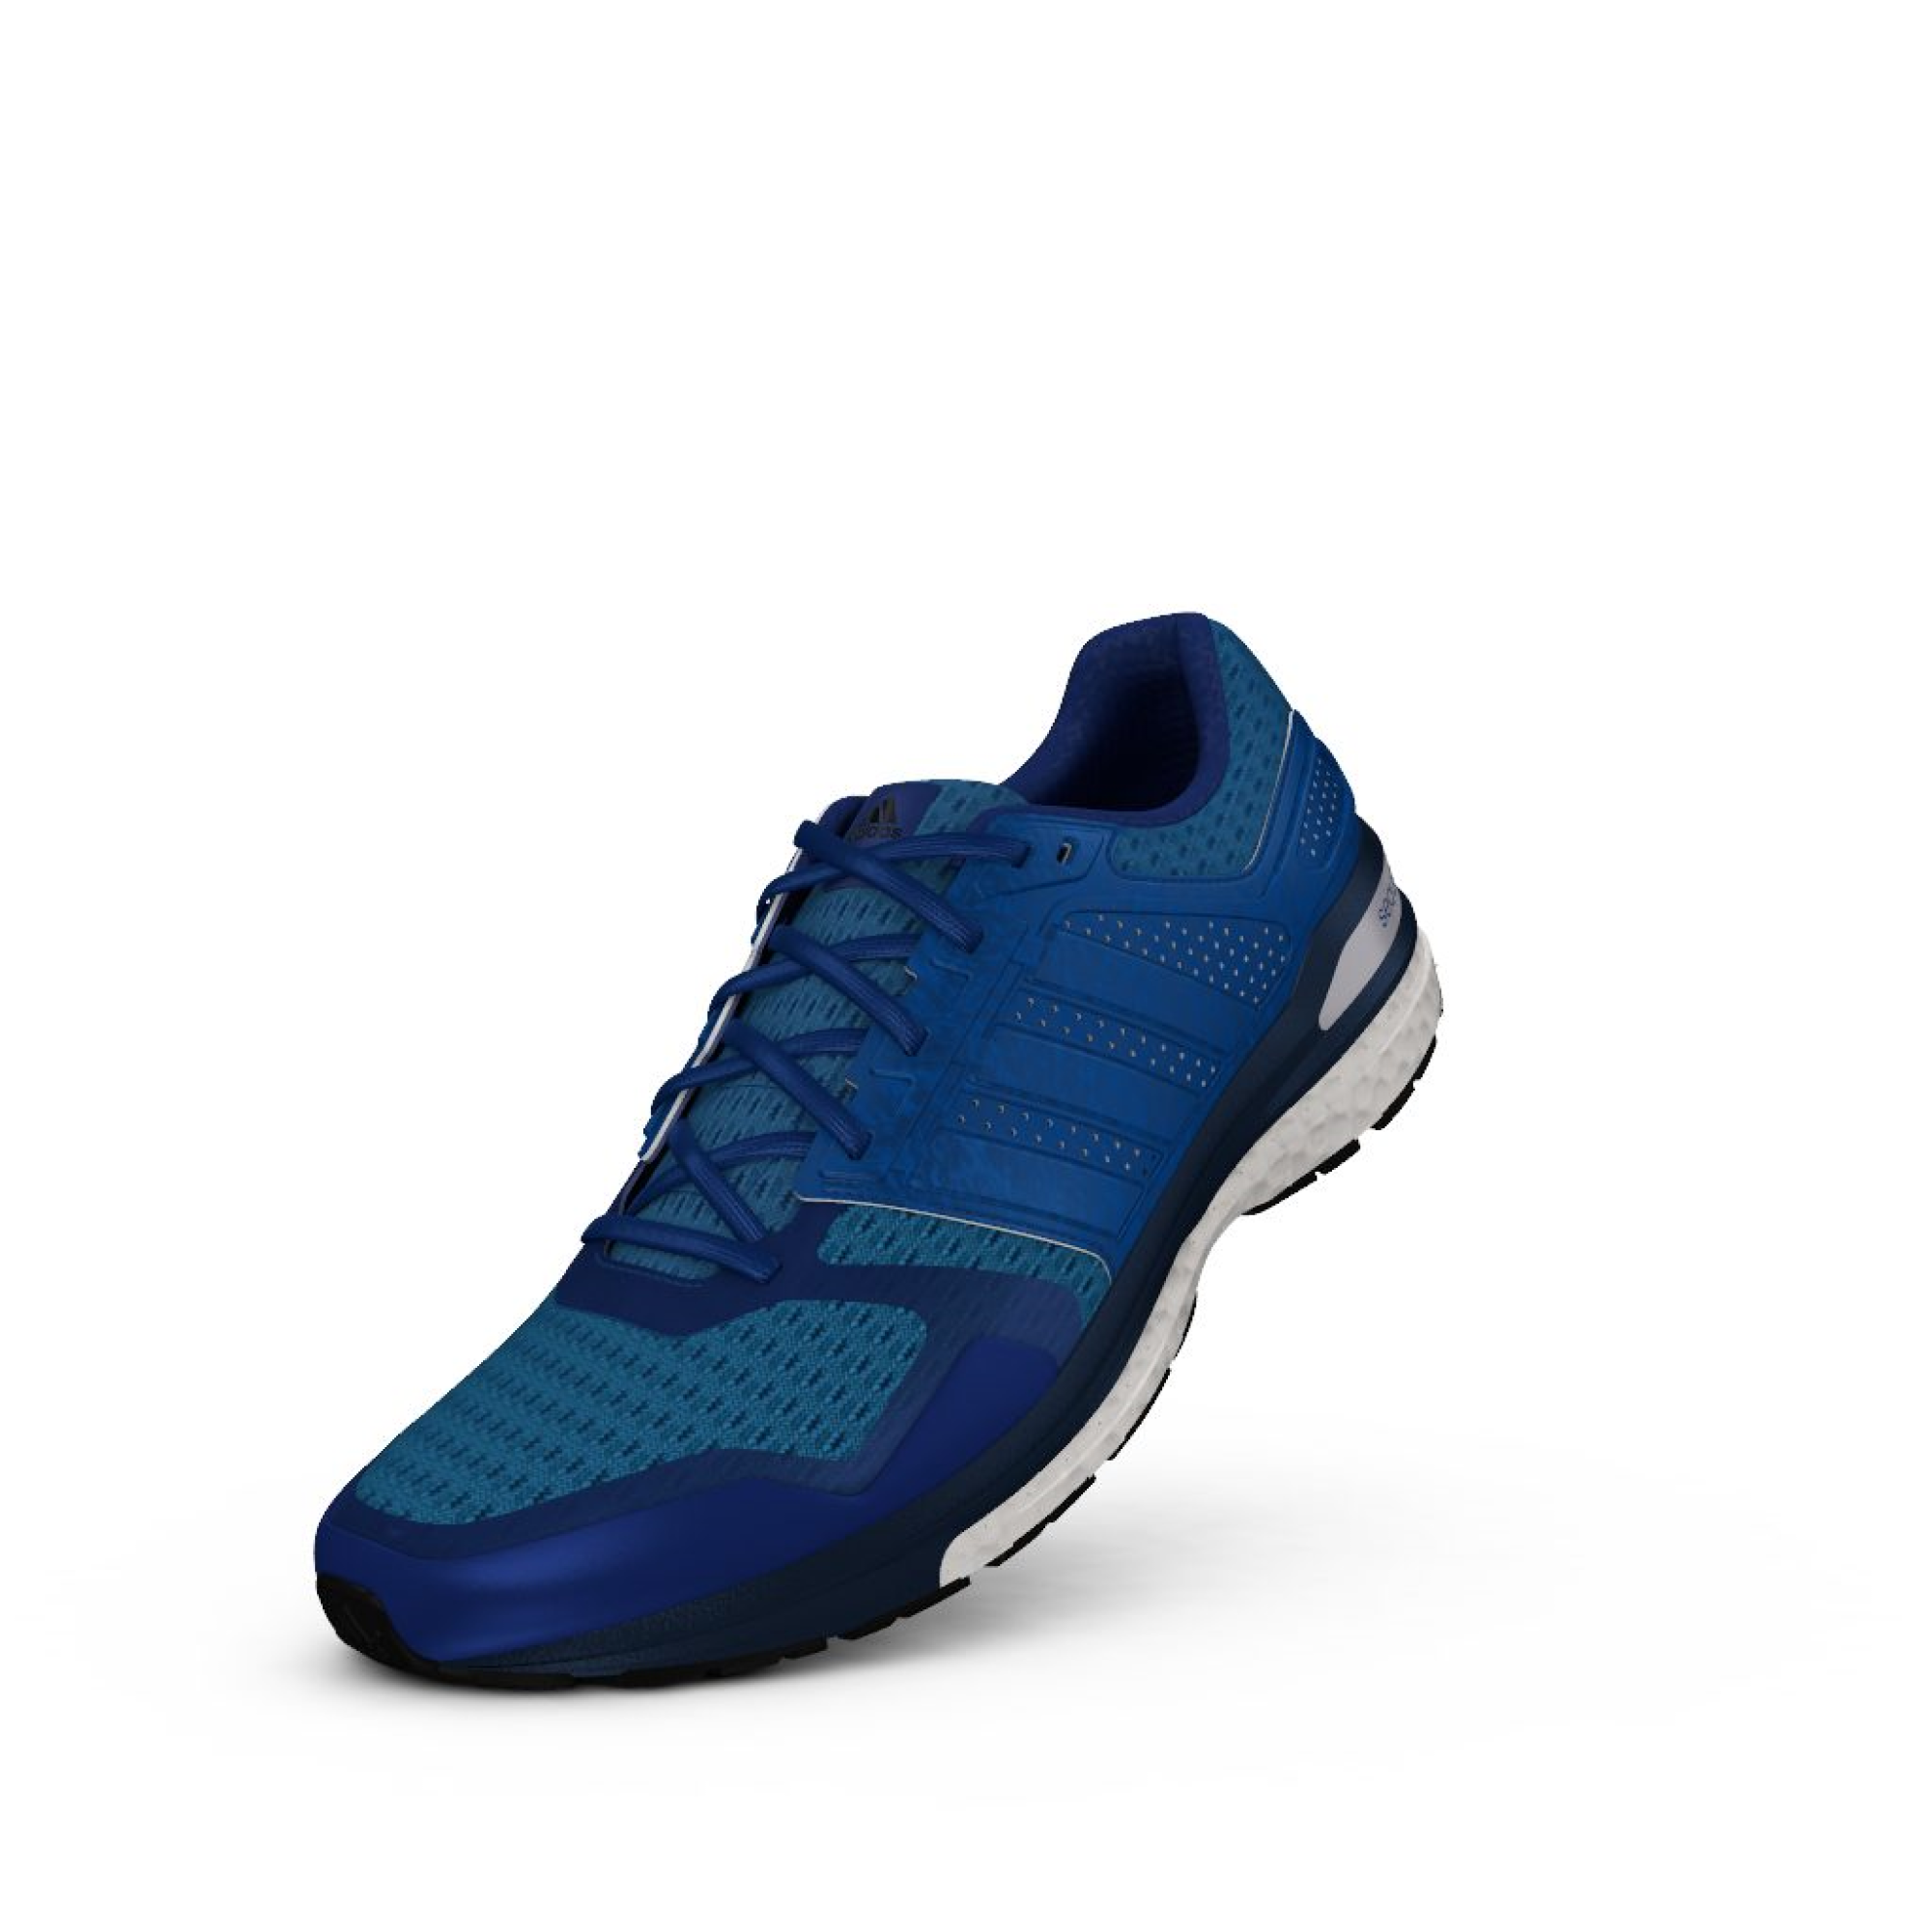 Adidas Sequence Boost 8 Refl. in Eqt Blue Mineral Blue